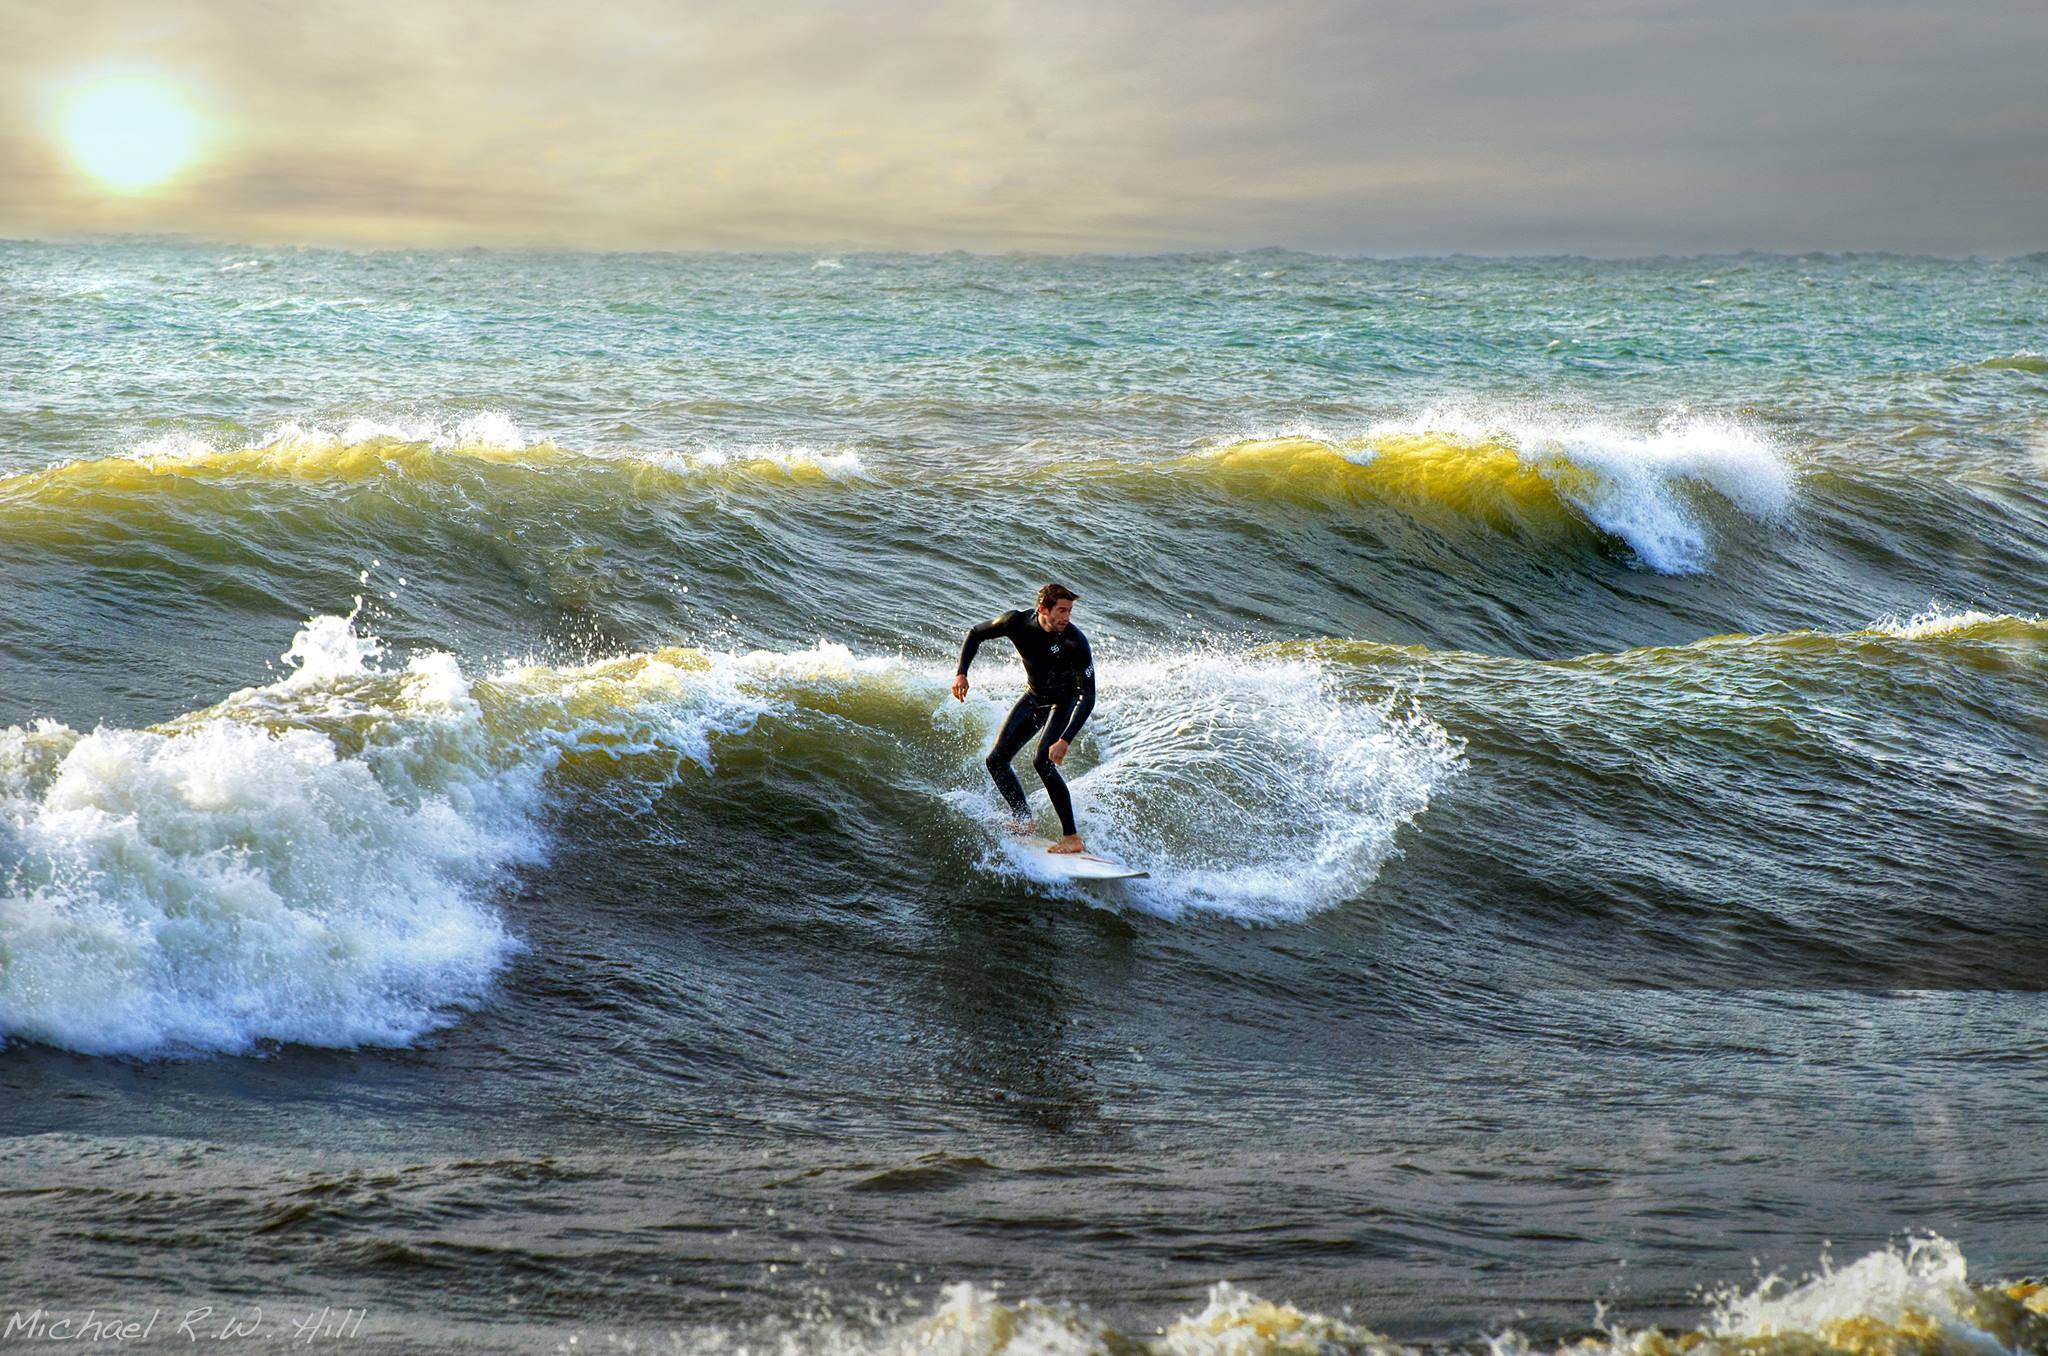 Surf's up in Toronto as wave season begins for cold water adventurers